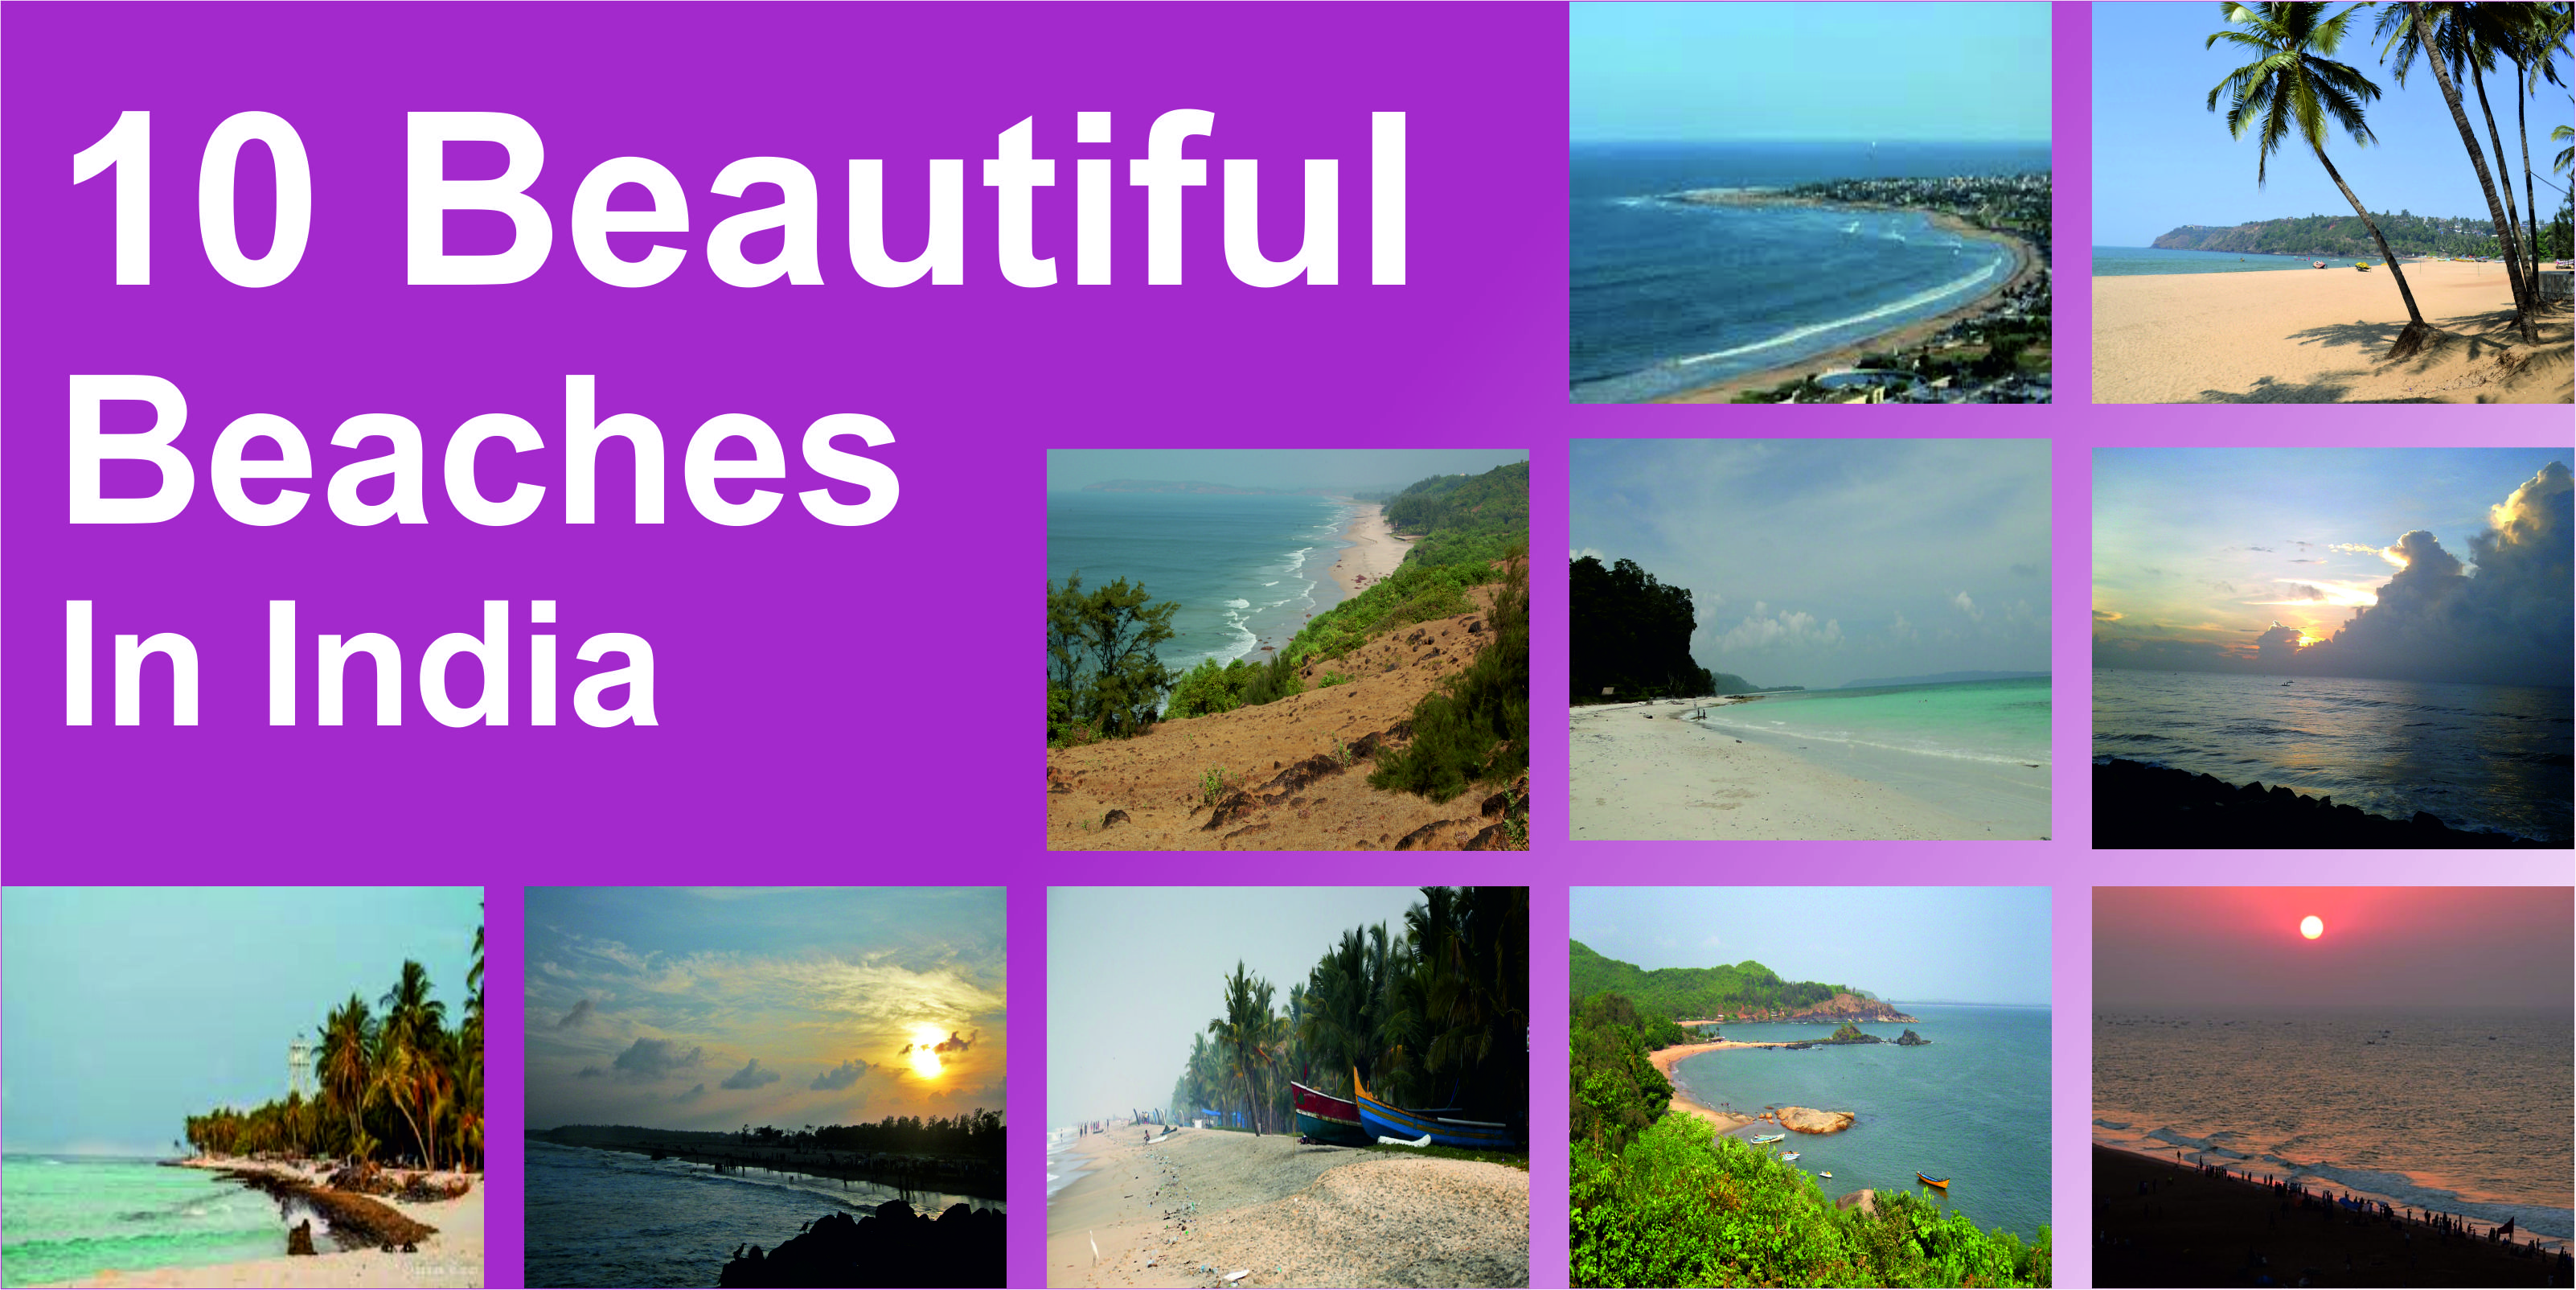 10-Beautiful-beaches-in-India-ShareHereNow-Lifestyle